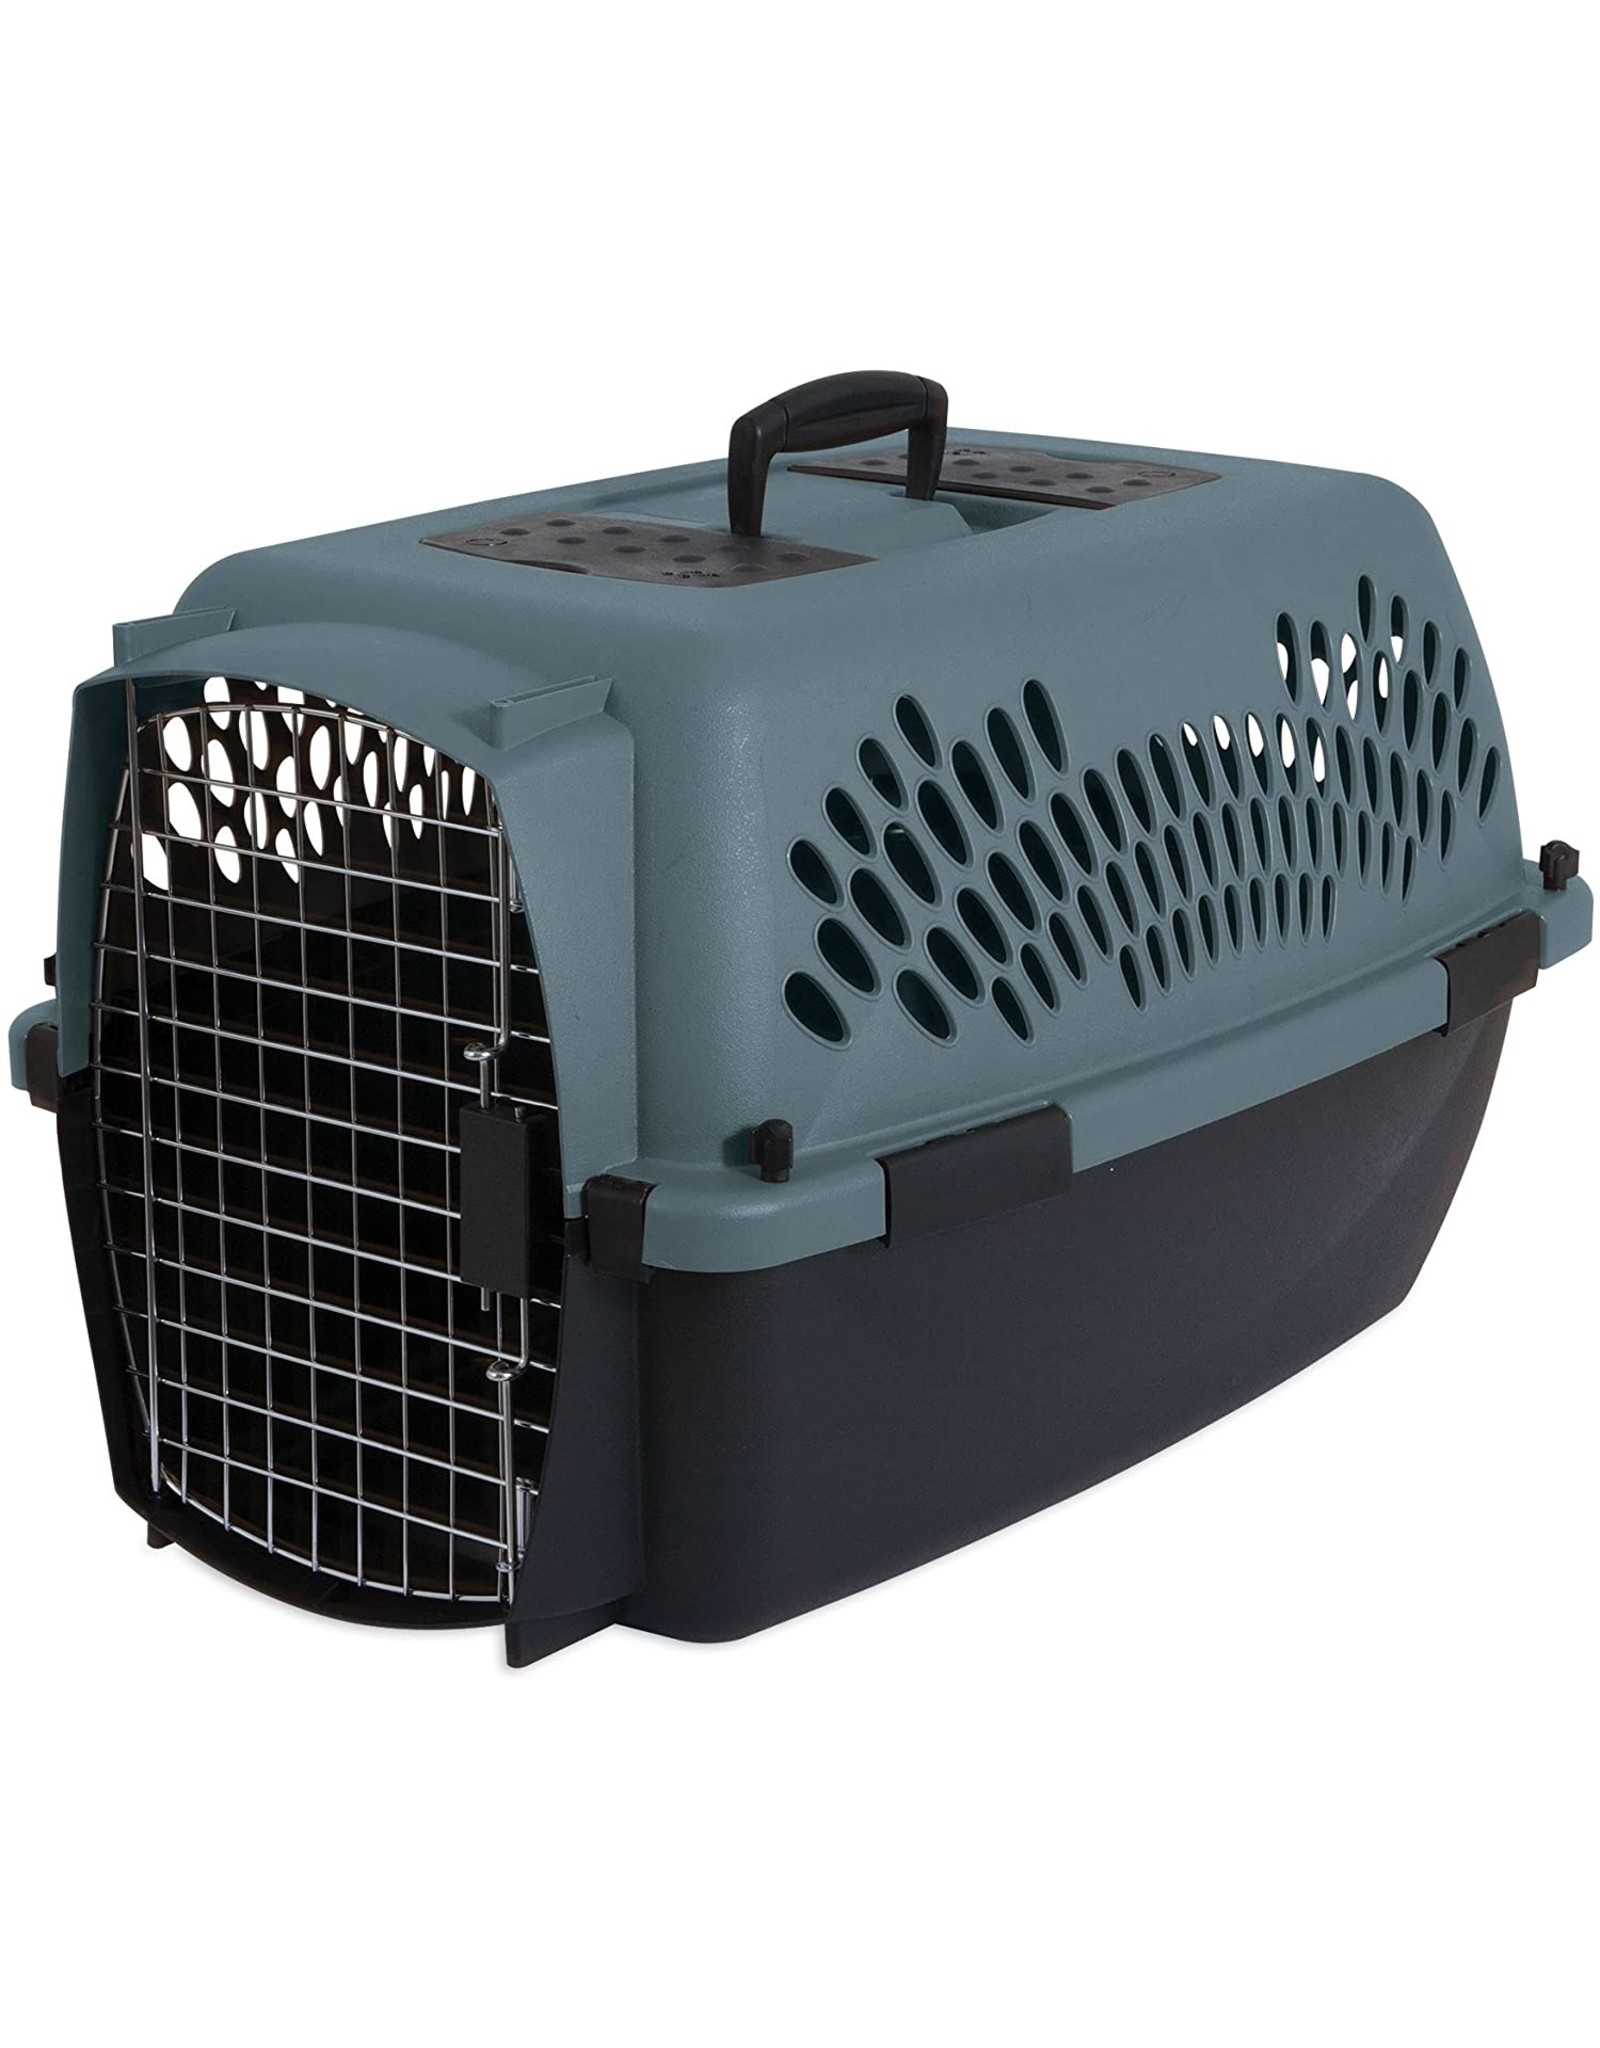 Petmate ASPEN PET FASHION PET PORTER HEAVY-DUTY PET CARRIER